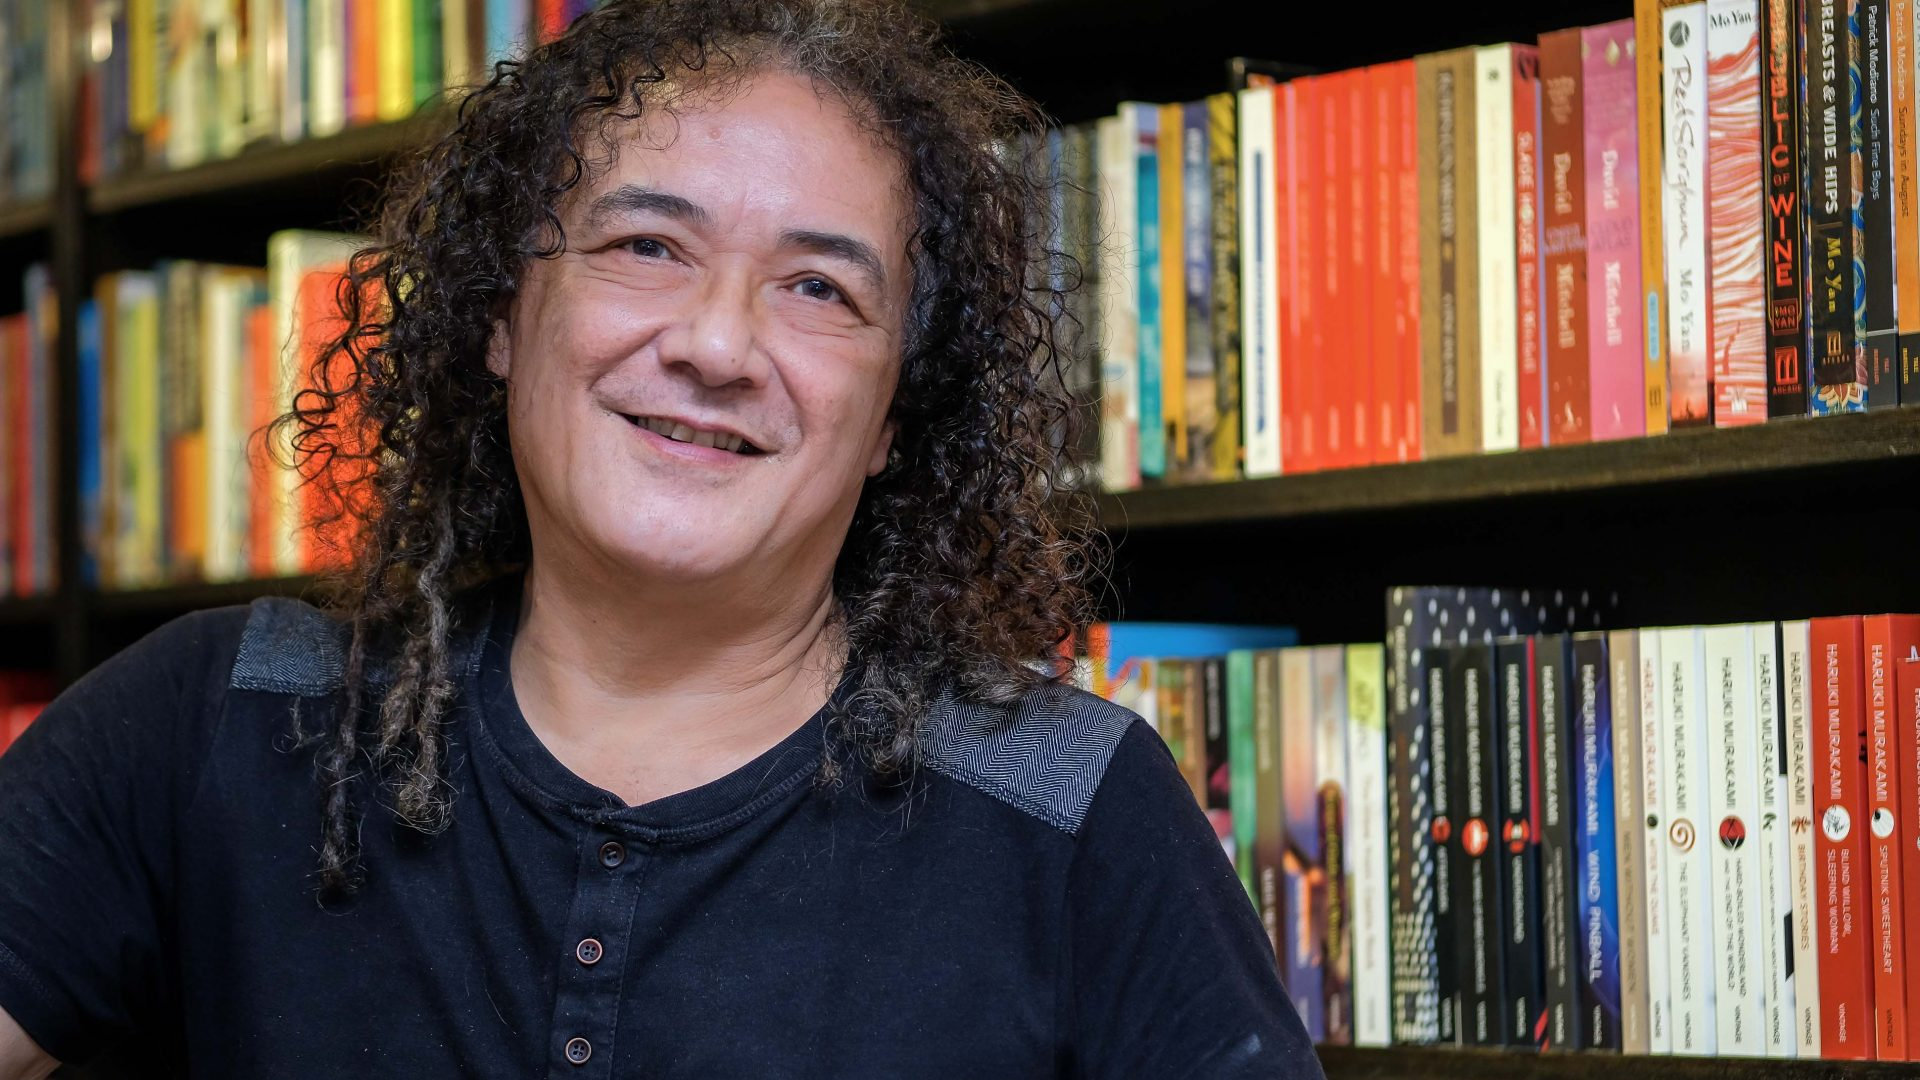 Gareth Richards, owner of Gerakbudaya Bookshop, academic, writer, editor and co-curator of the George Town Literary Festival.